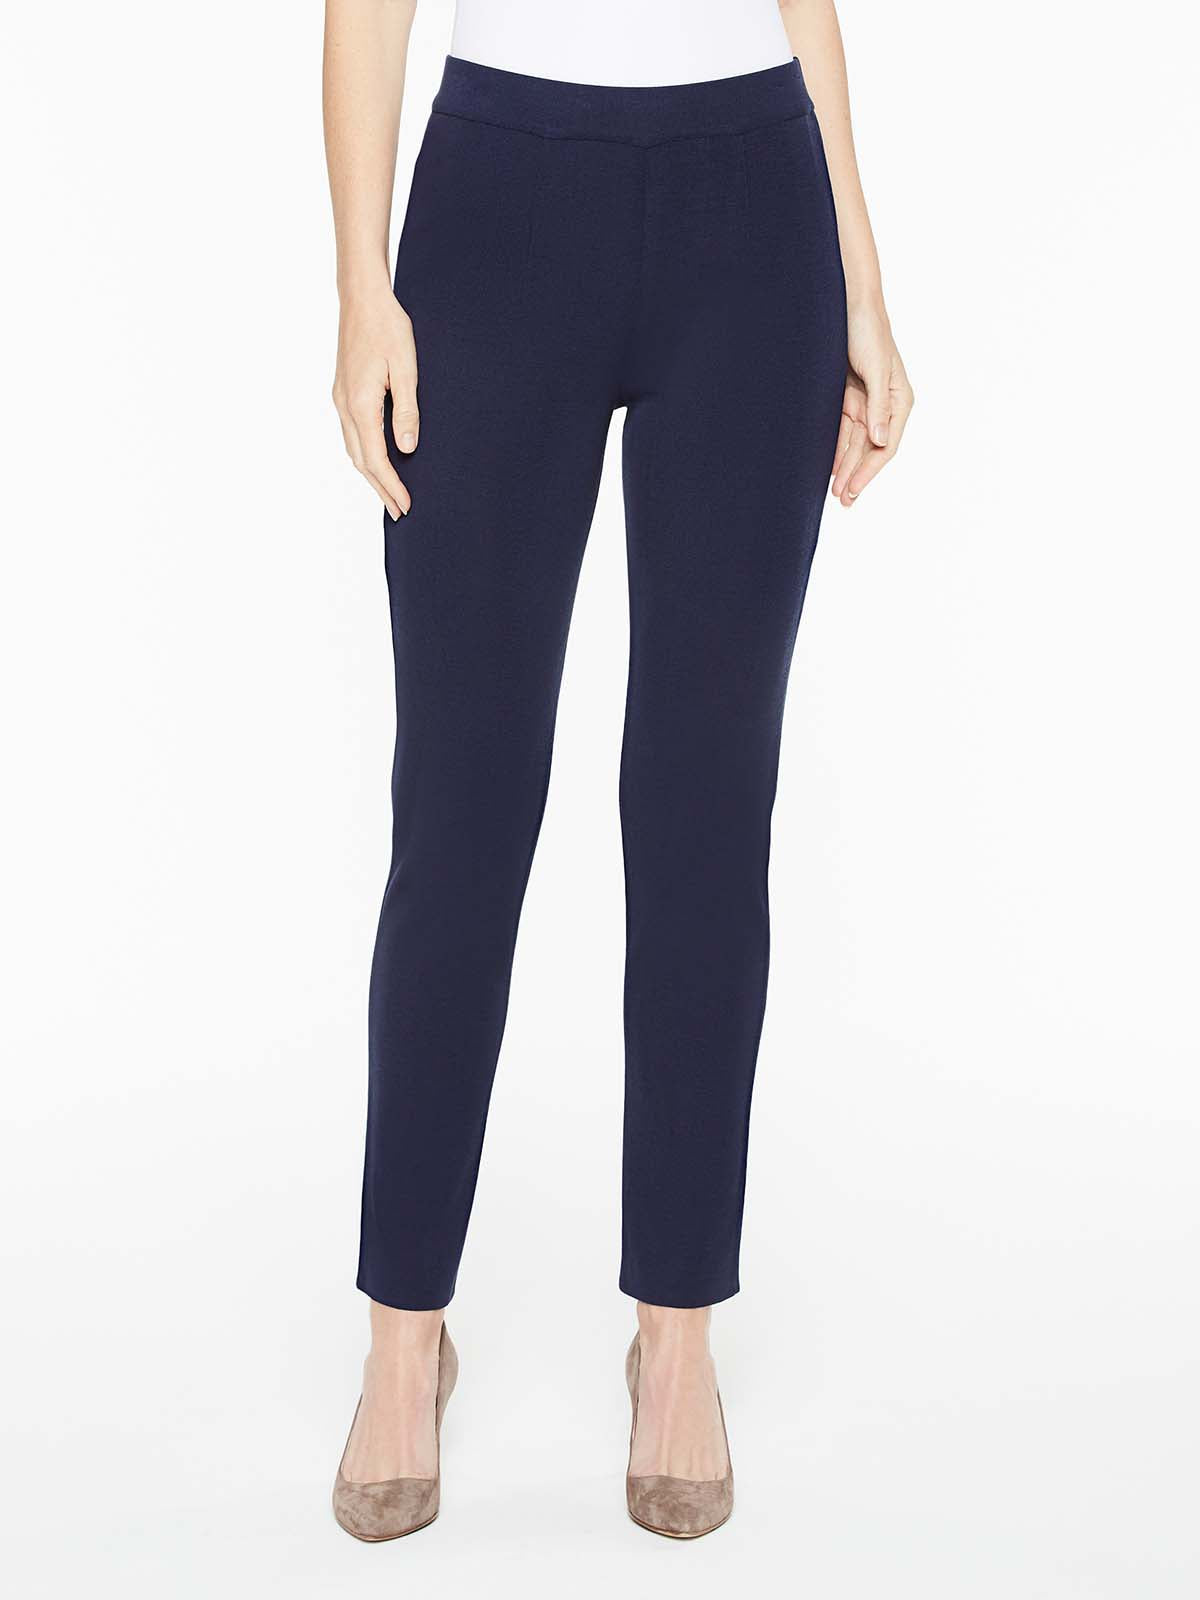 Indigo Slim Leg Knit Pant Color Indigo